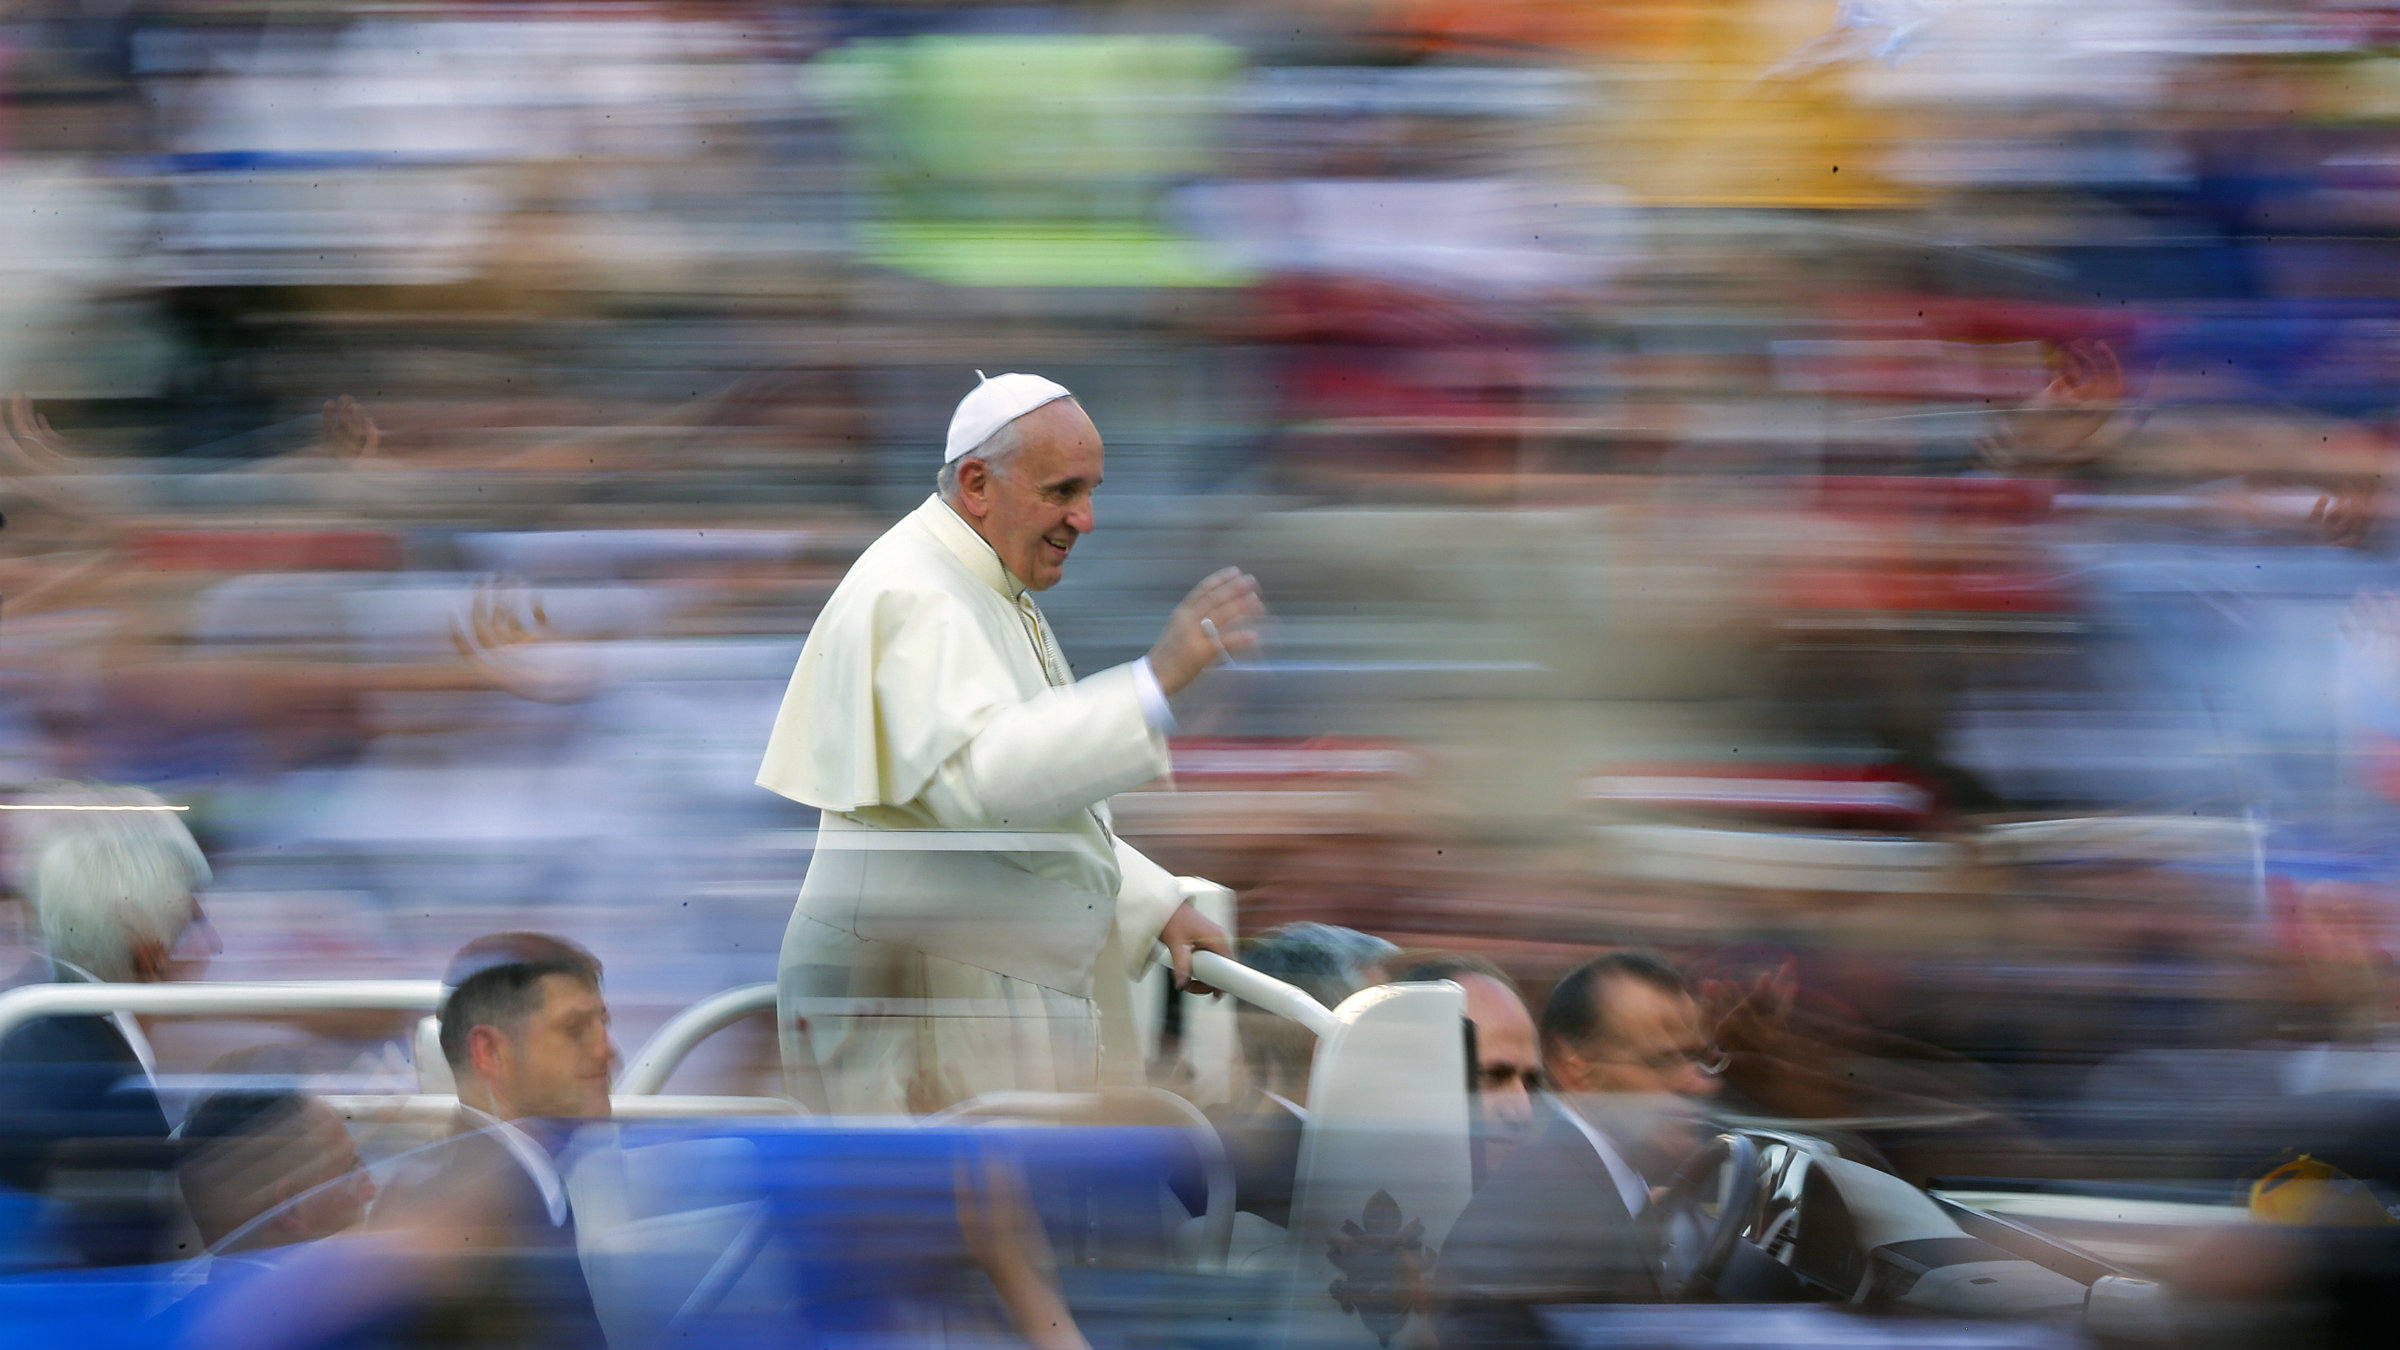 Pope Francis in a fast-moving popemobile shot.